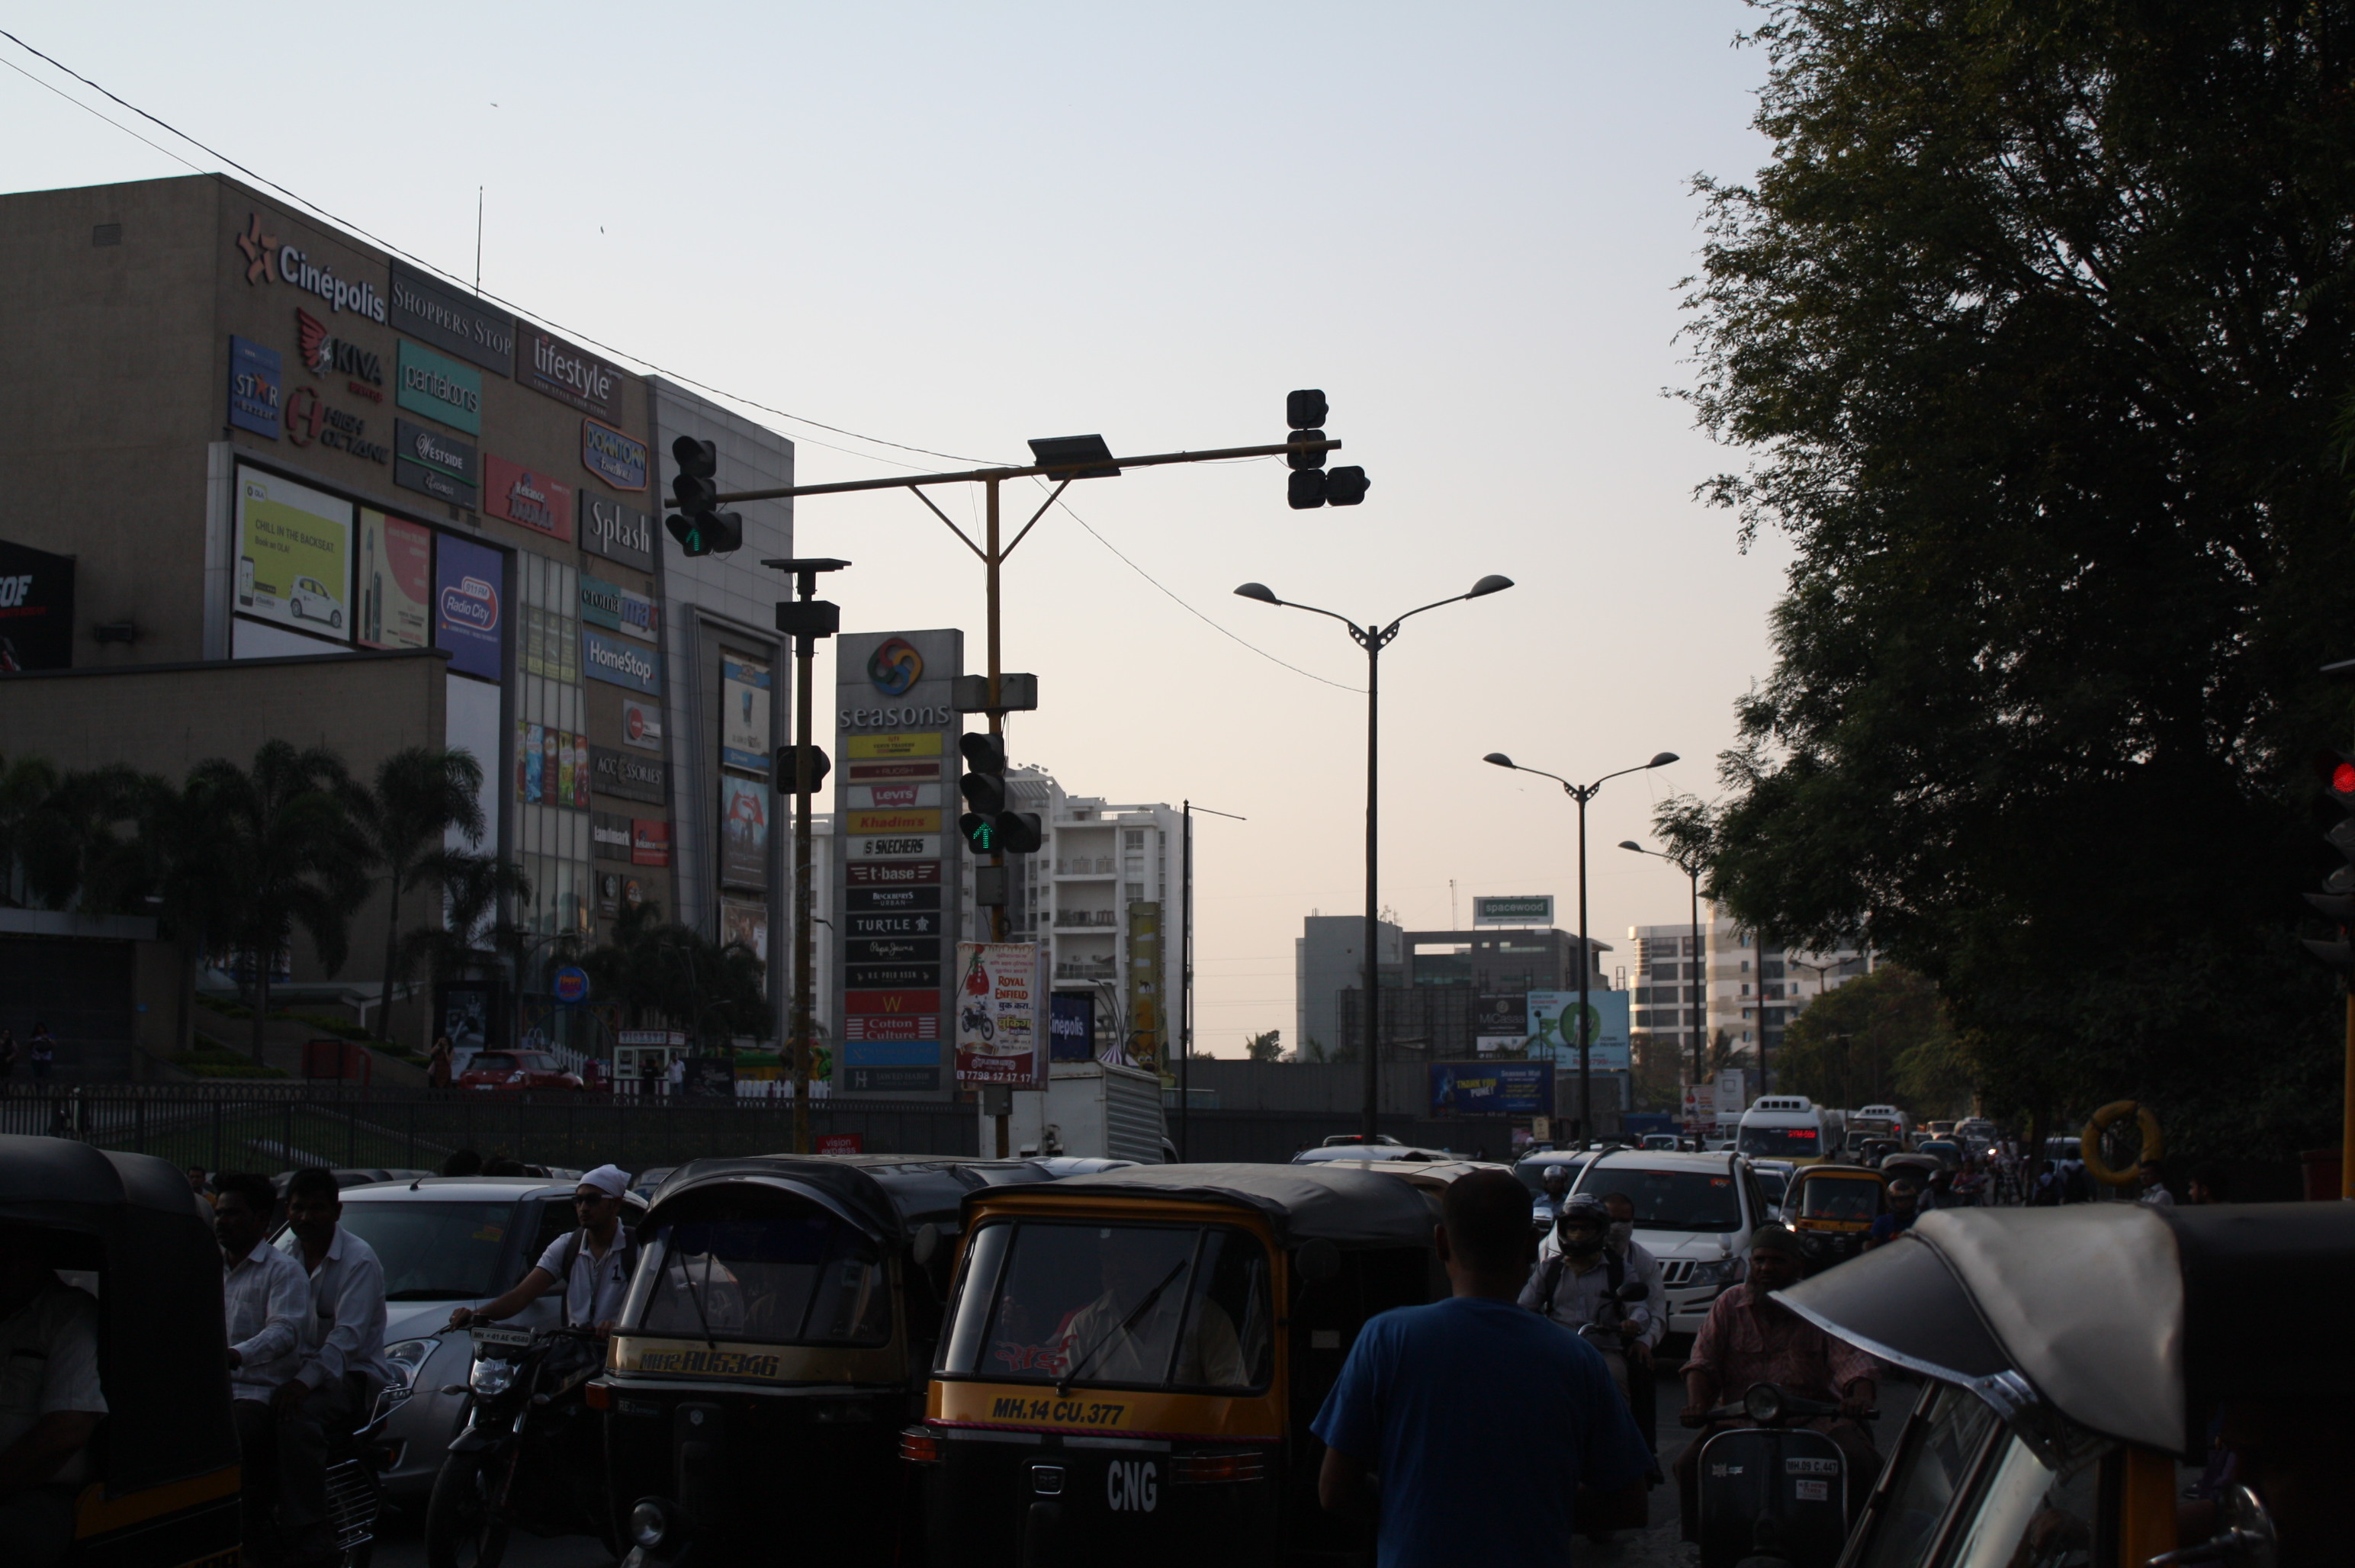 How to cross the road in India: a practical guide